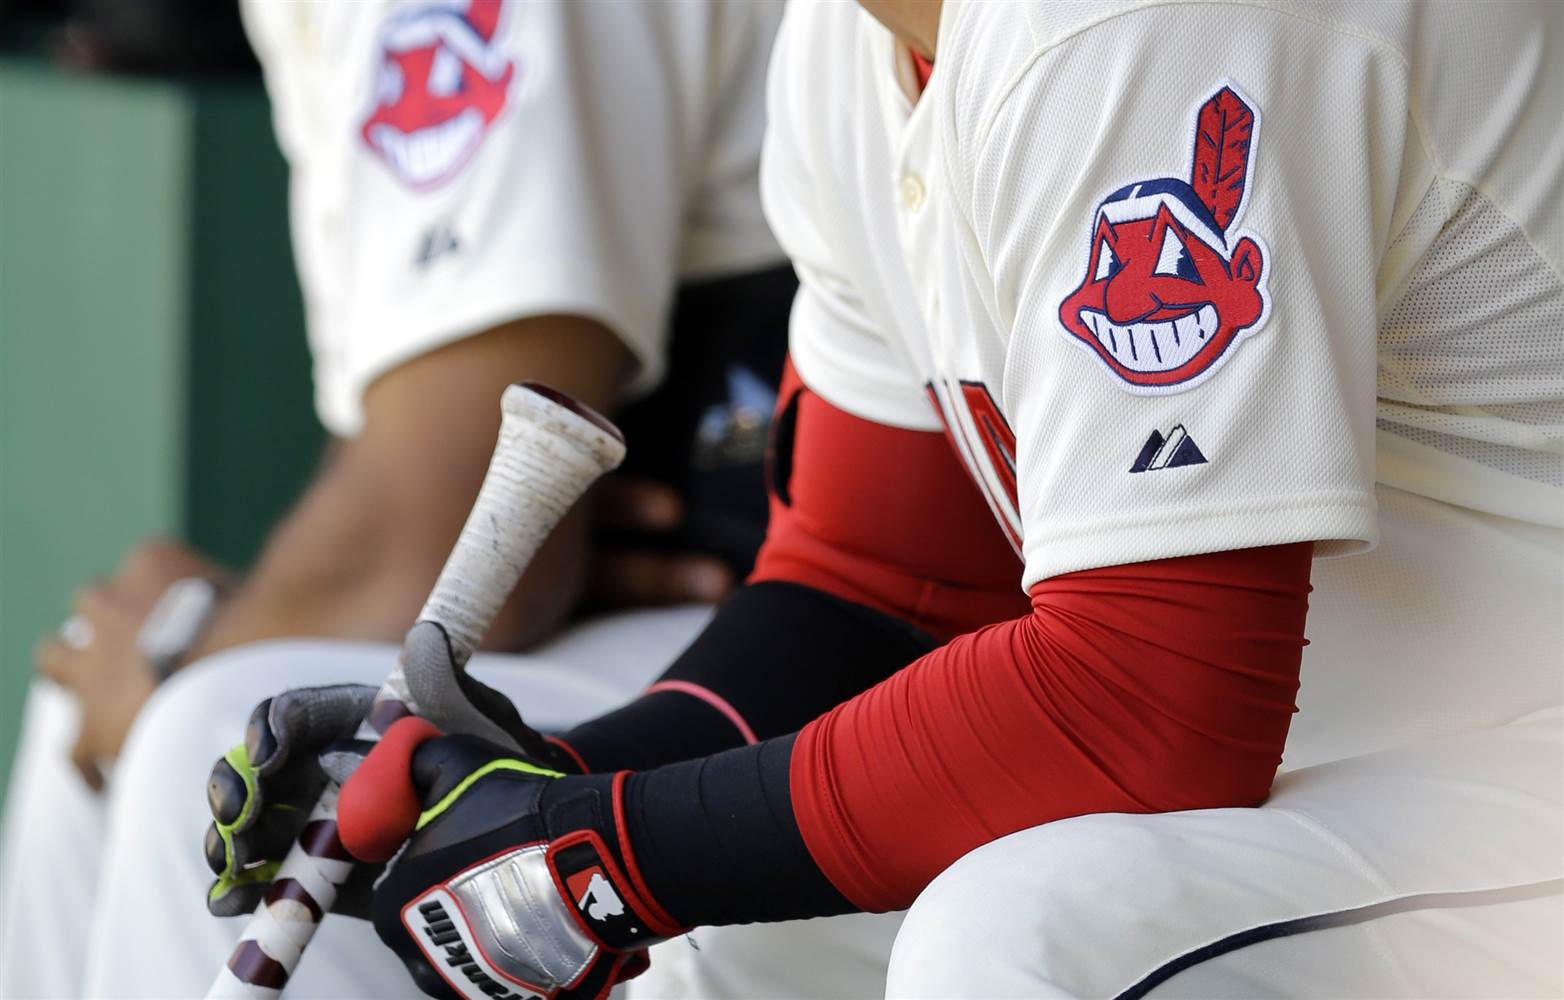 Cleveland Indians Will Bench Polarizing Chief Wahoo Logo In 2019